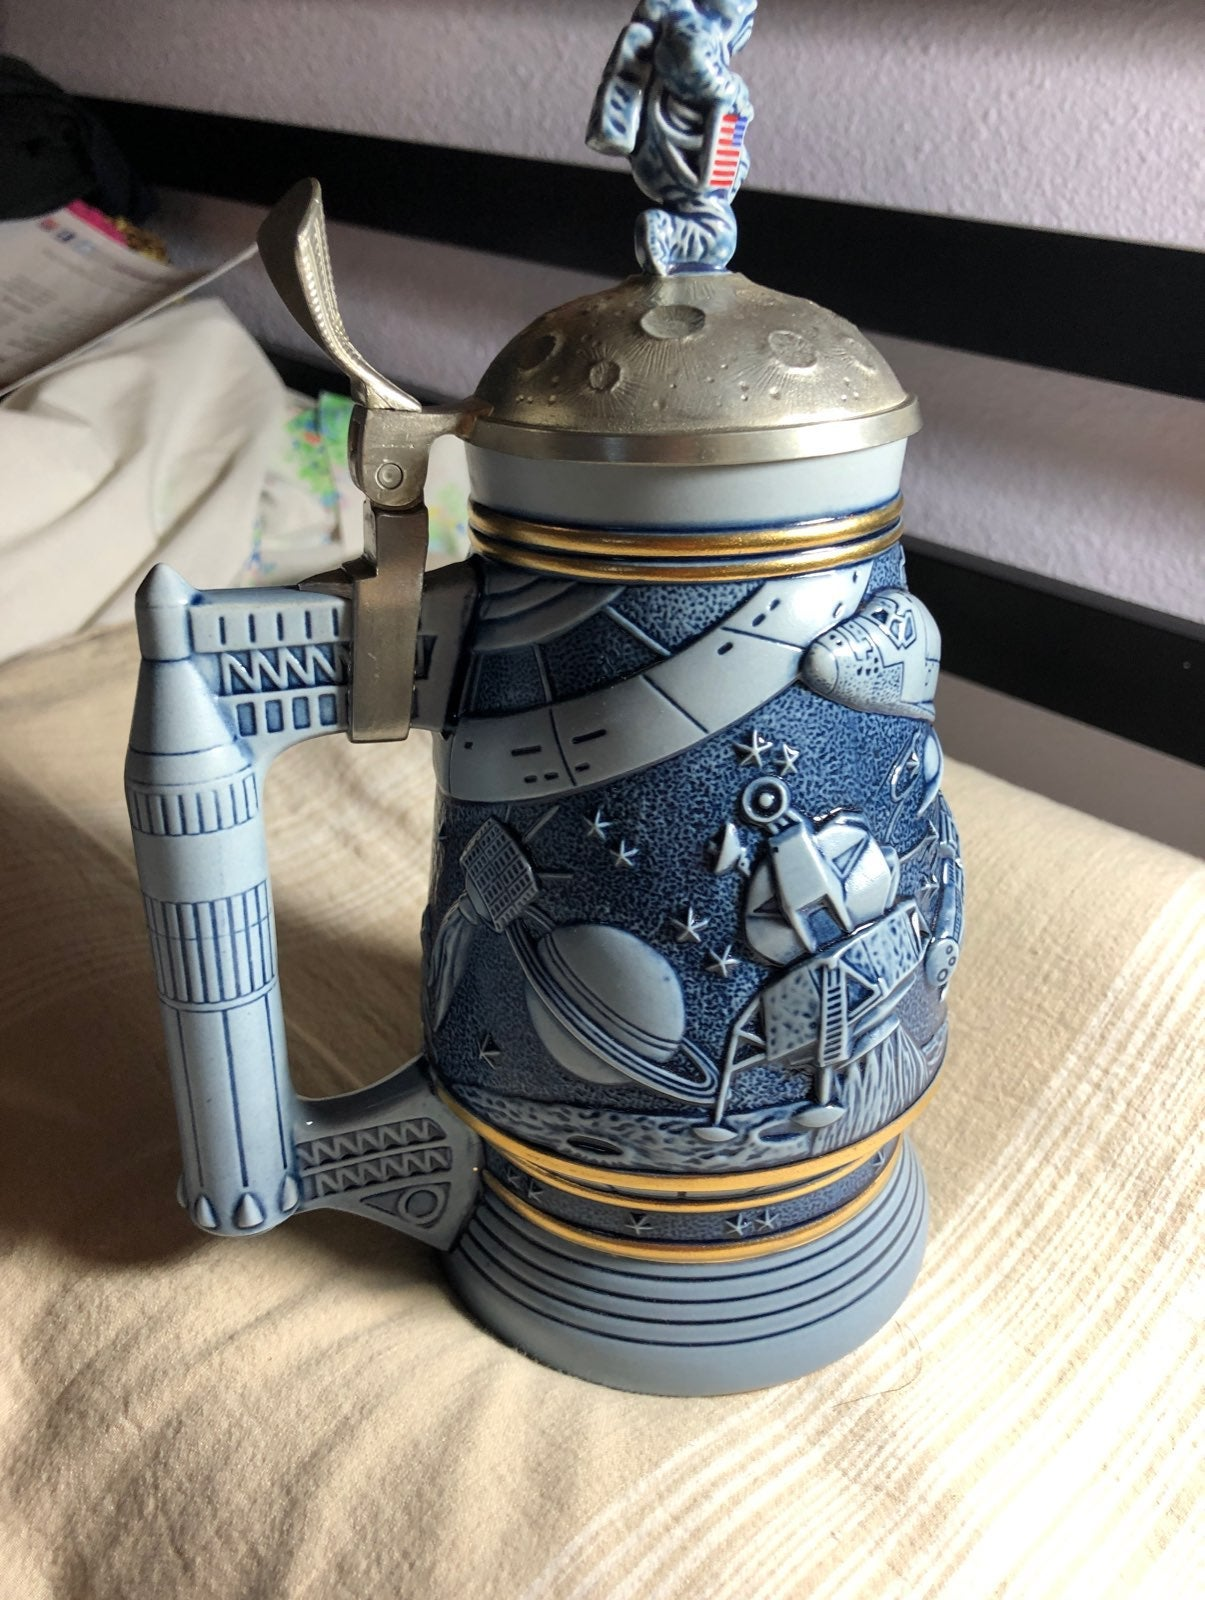 Conquest of Space Stein Avon collectible